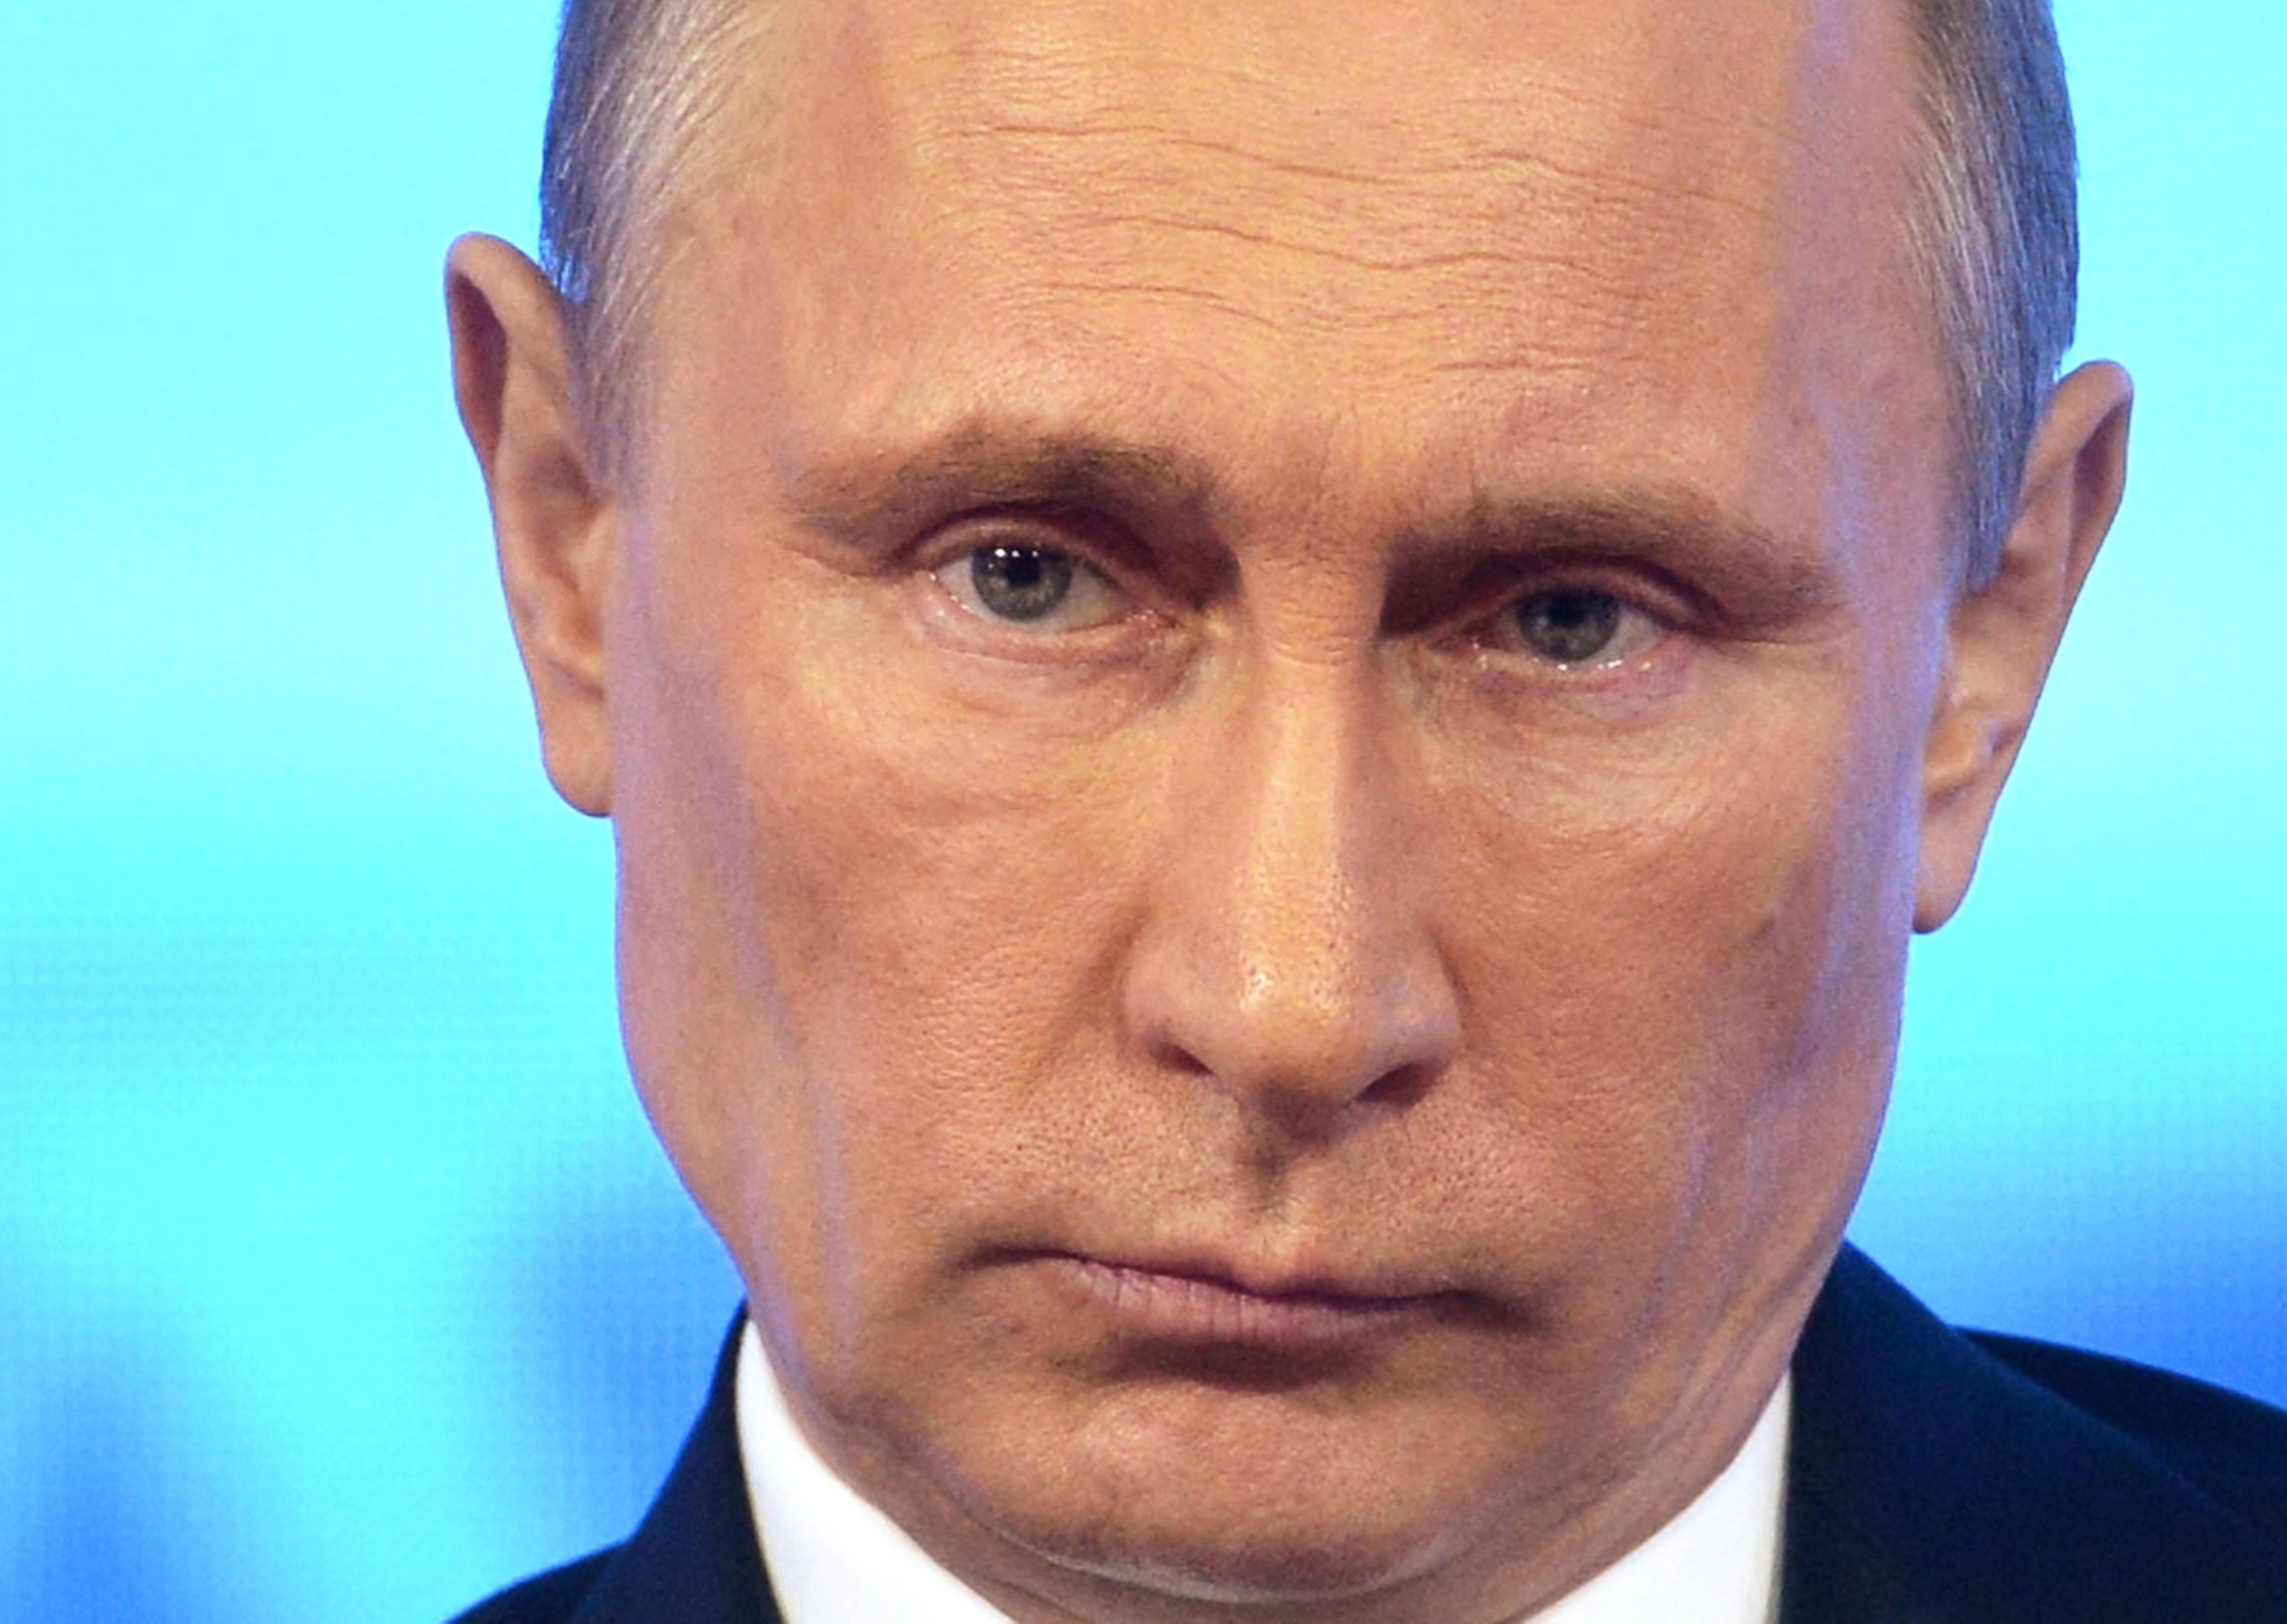 Russian President Vladimir Putin takes part in a call-in show in Moscow on Thursday. Edward Snowden was a caller to the show.